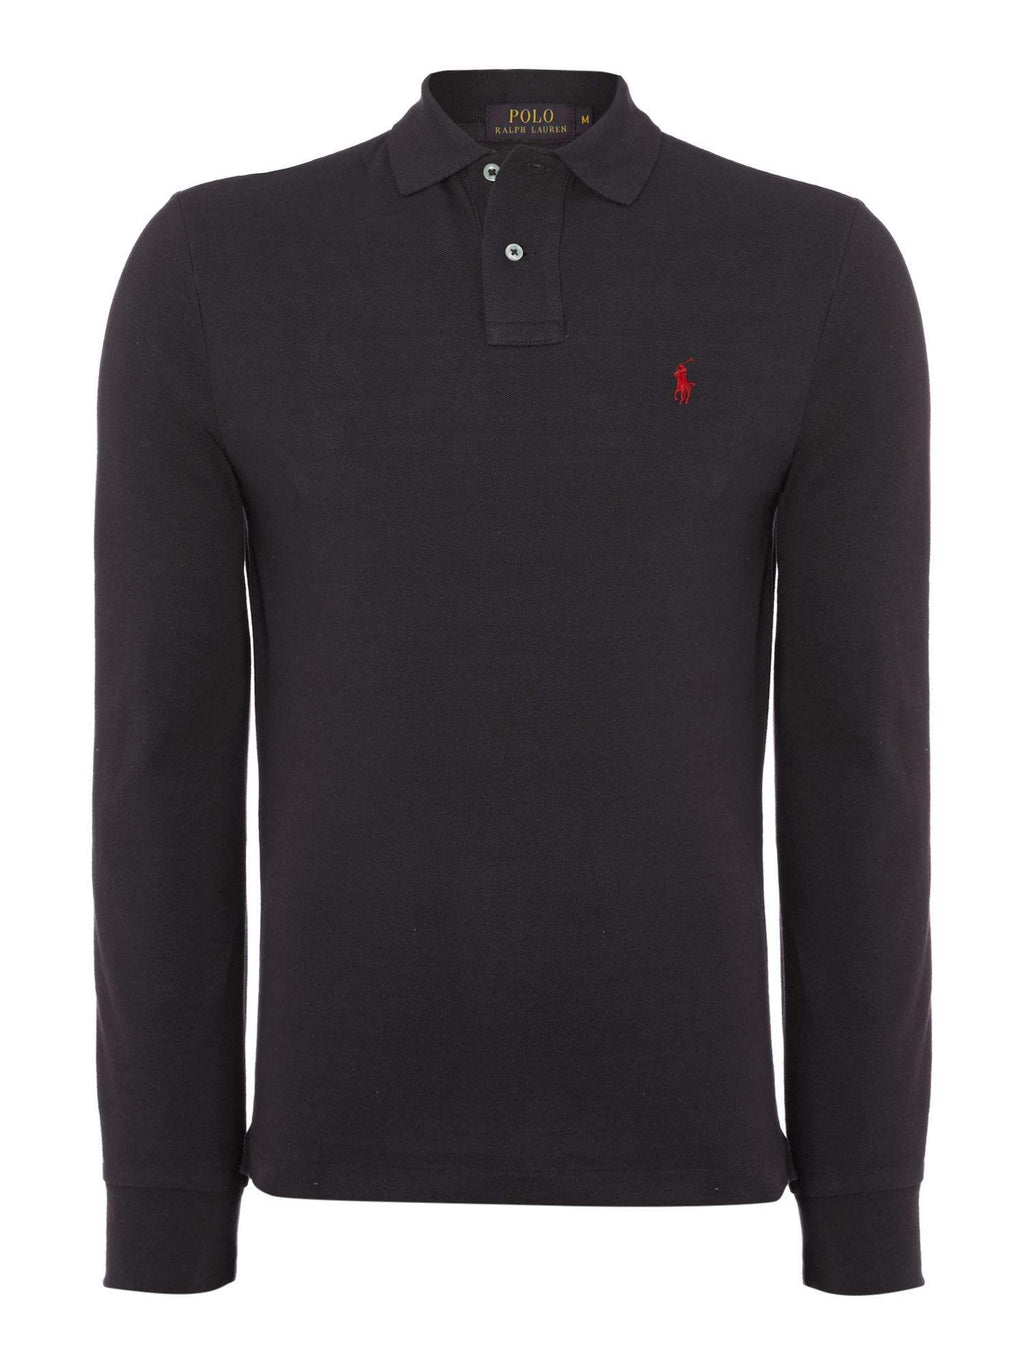 Ralph Lauren Polo Long Sleeve Slim Fit Shirt by Ralph Lauren - My100Brands